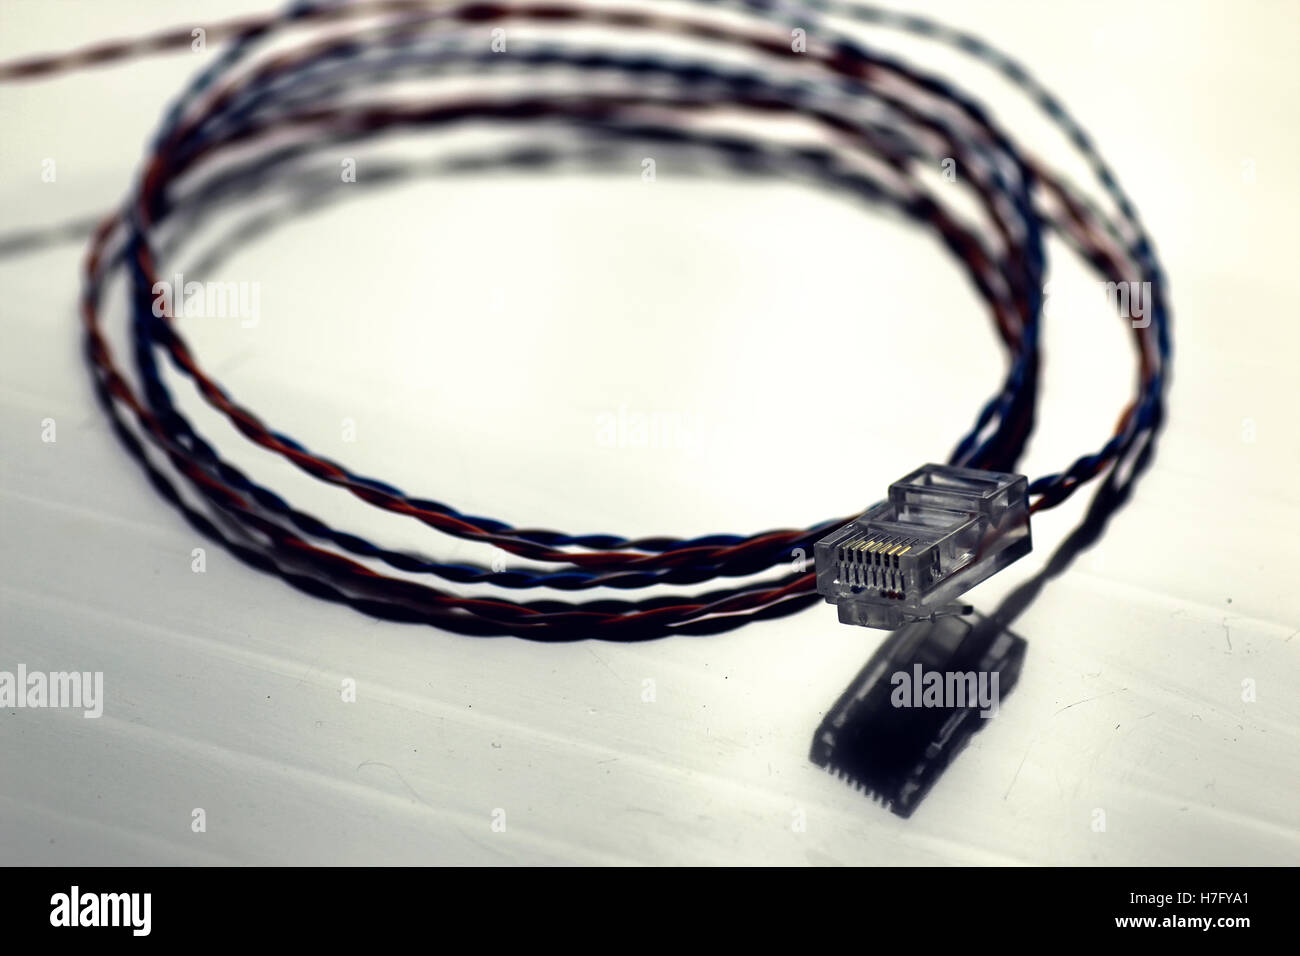 Admirable Plug Wire Color Lan Stock Photo 125125897 Alamy Wiring 101 Olytiaxxcnl